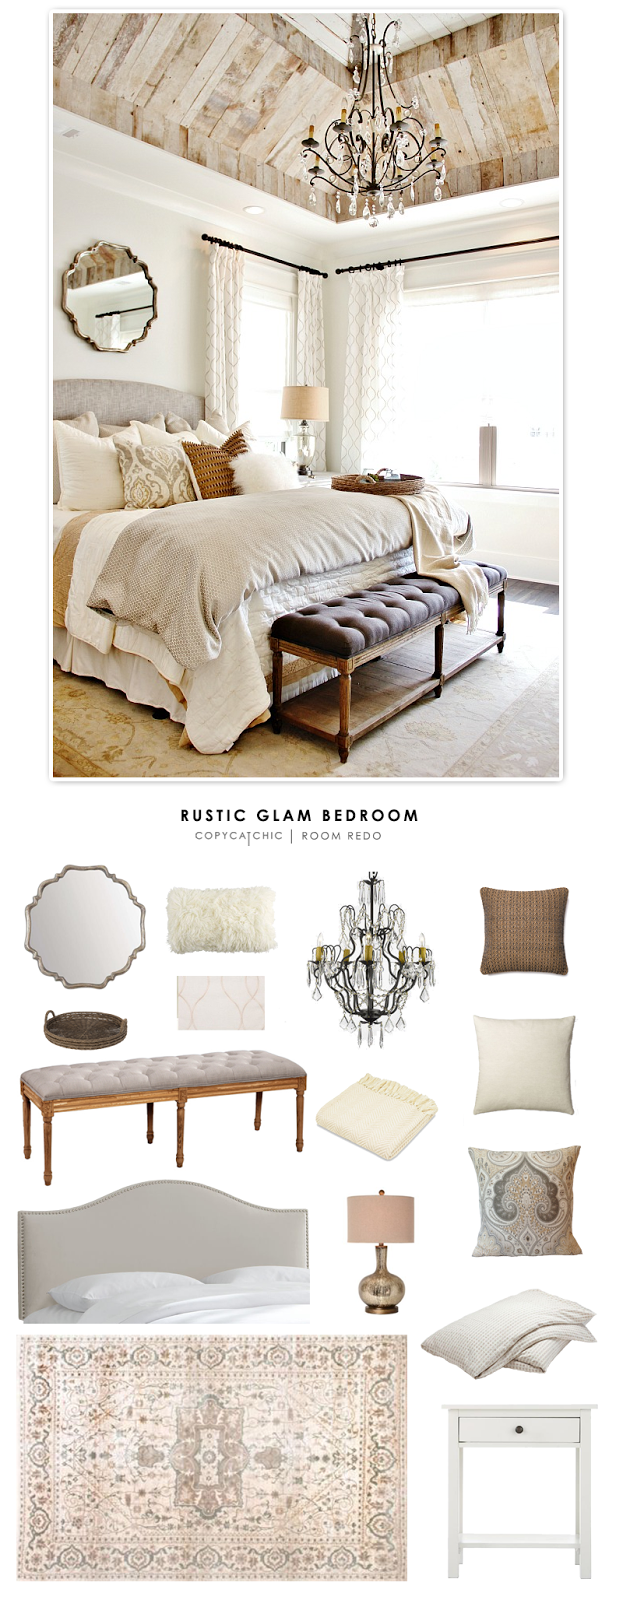 Copy Cat Chic Room Redo Rustic Glam